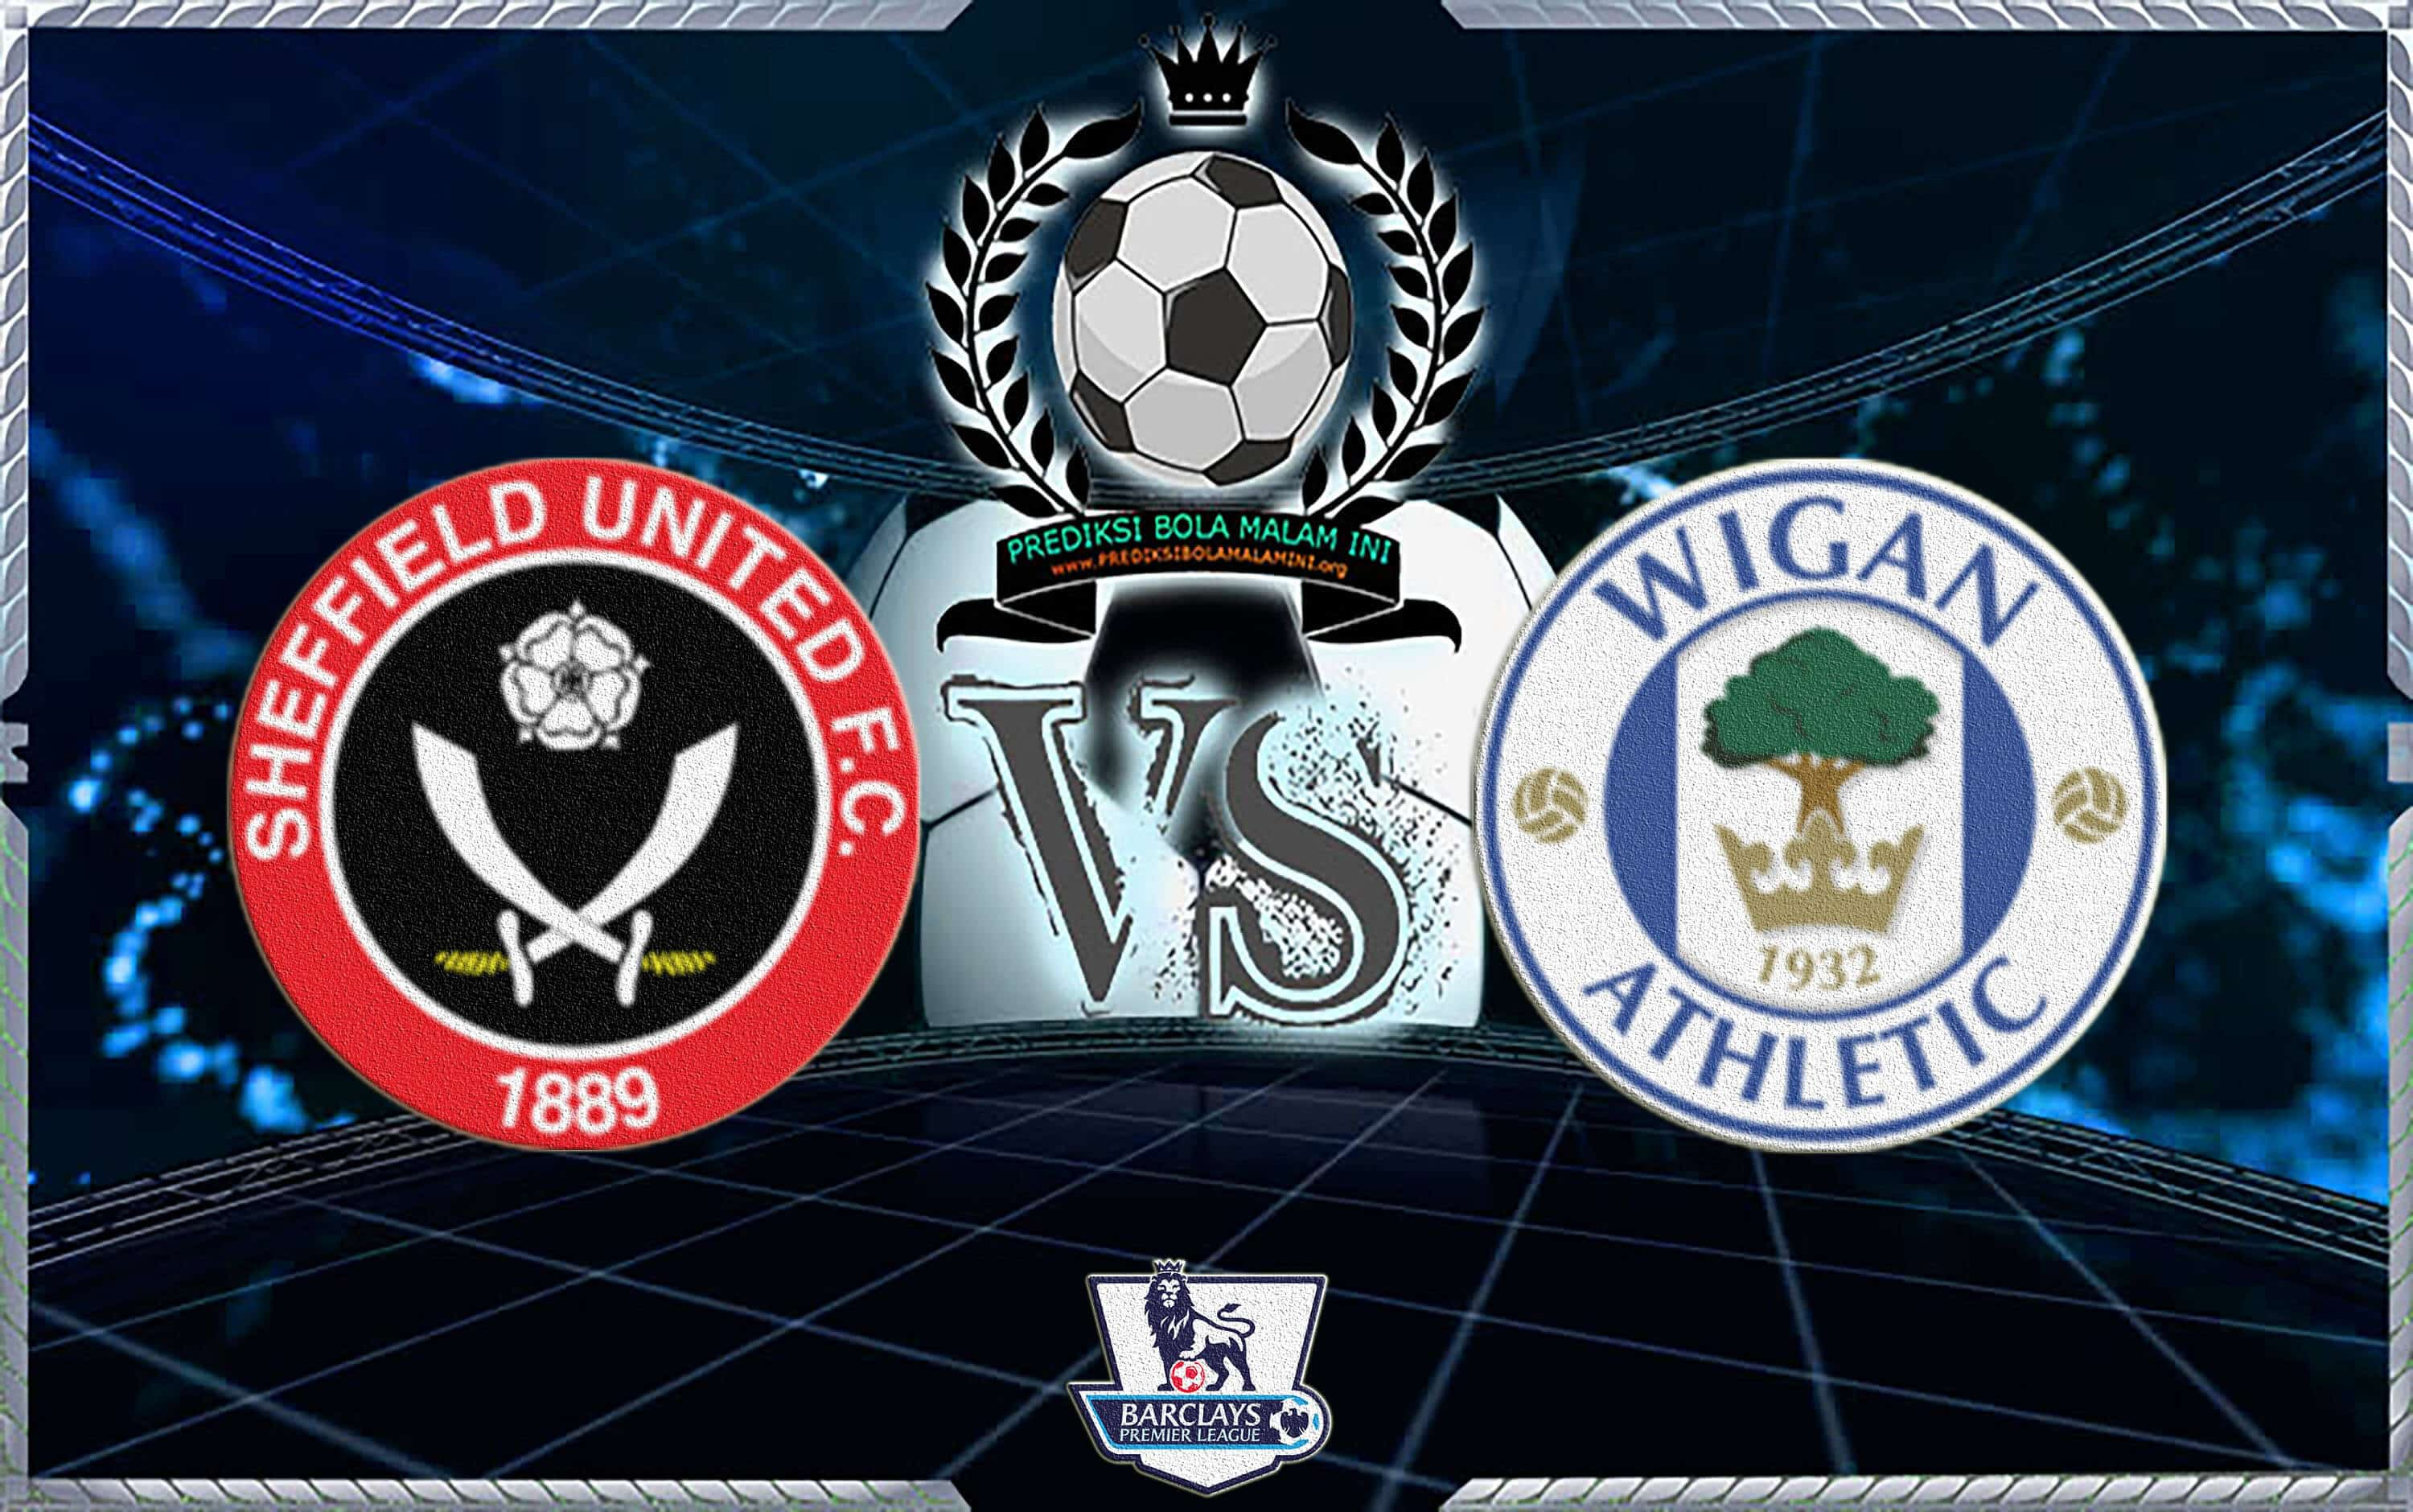 SHEFFIELD UNITED Vs WIGAN ATHLETIC Skor 27 Oktober 2018